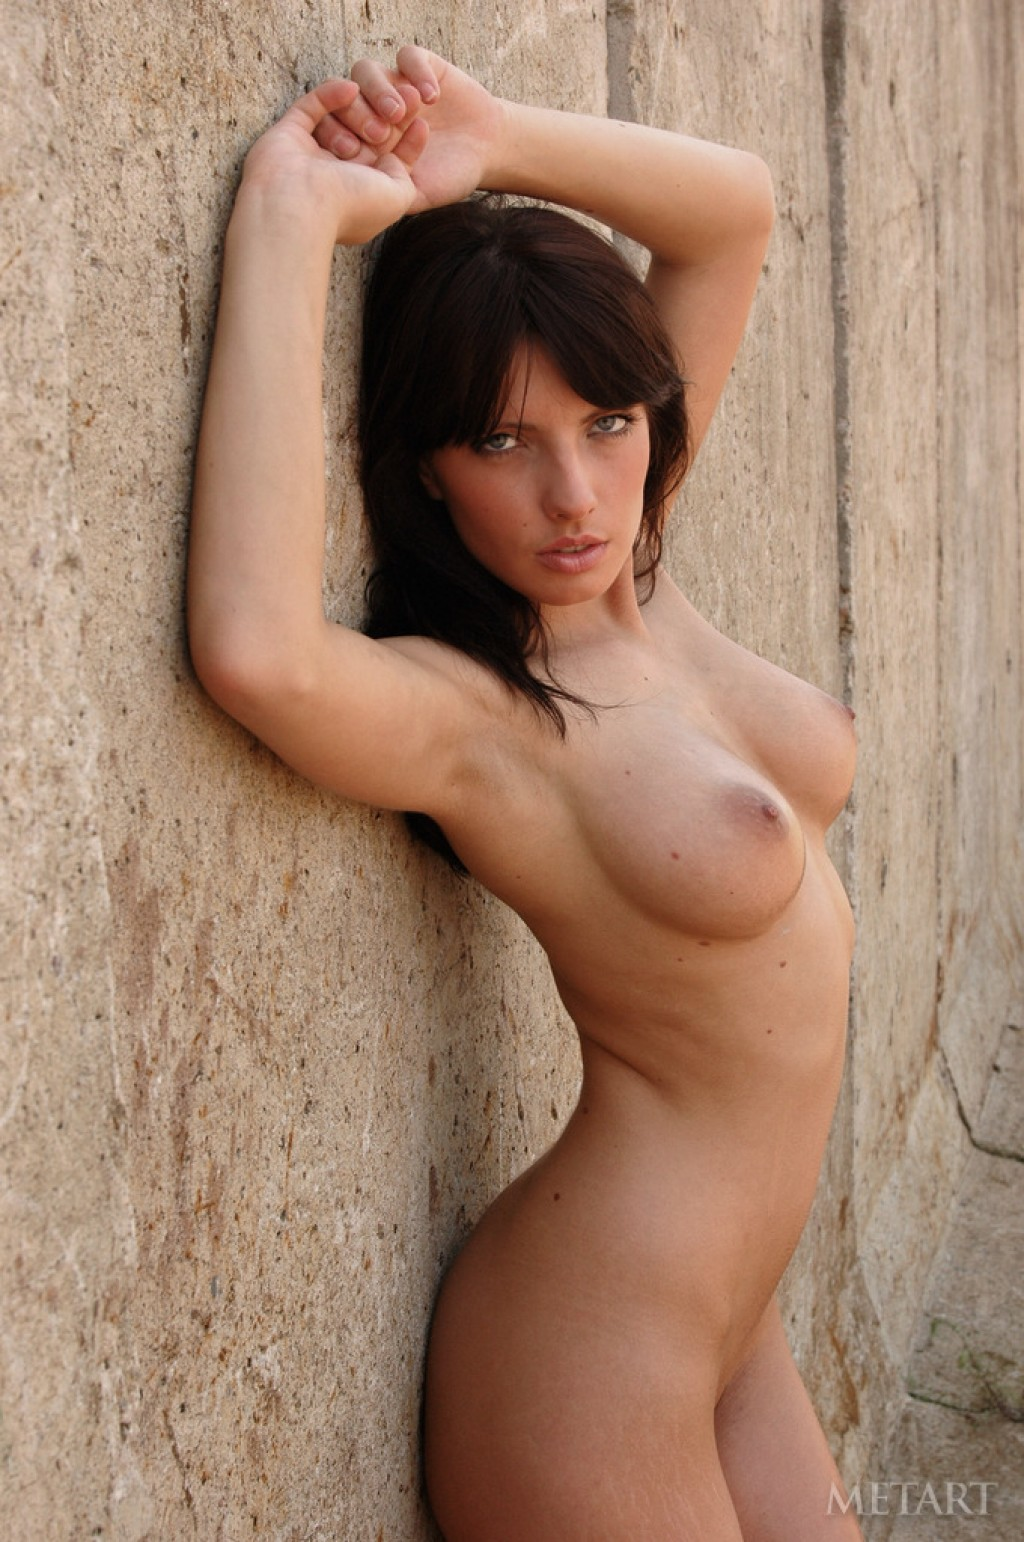 theNude | sexy babes, naked art, erotic models, nude covers